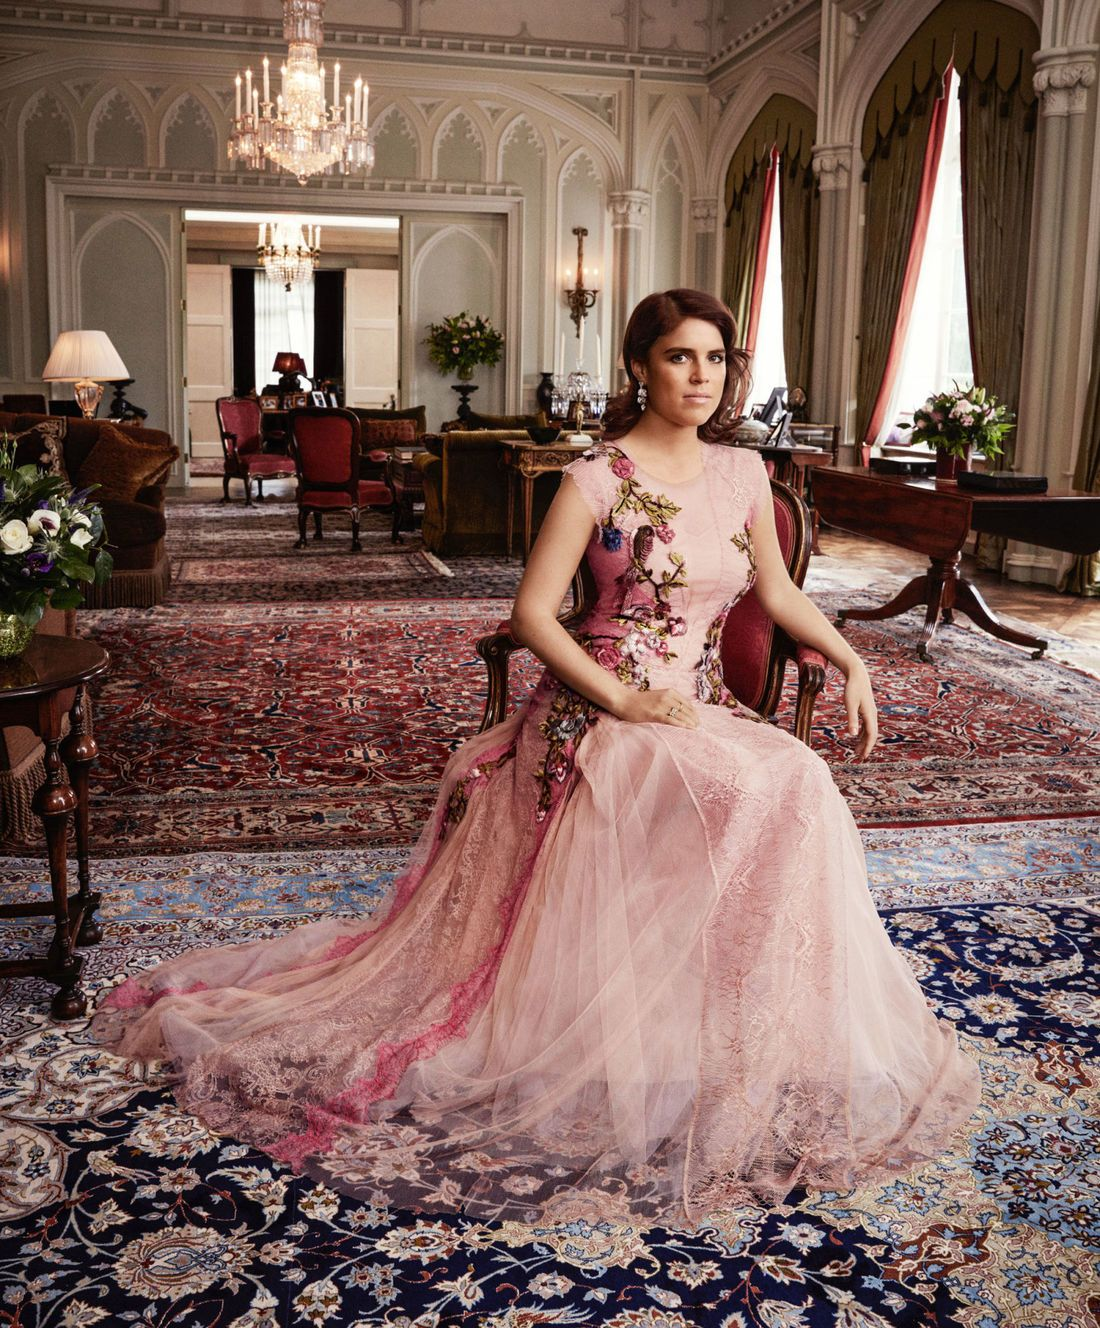 INTERVIEW DE LA PRINCESSE EUGENIE D'YORK PRINCESS